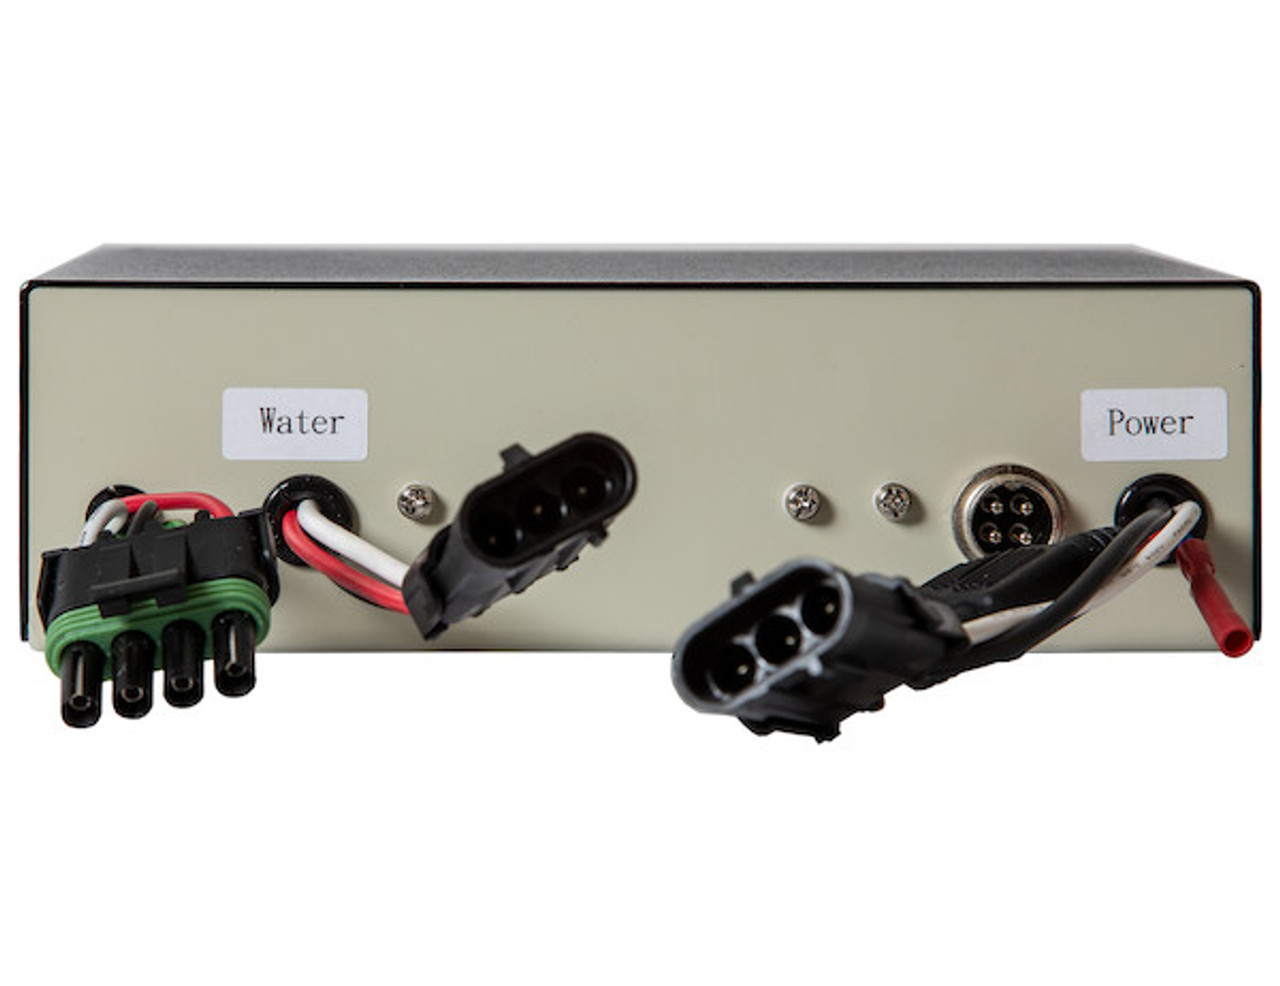 HVCO6 BUYERS PRODUCTS SALTDOGG ELECTRIC/HYDRAULIC SPREADER CONTROLLER WITH GROUND SPEED INPUT AND GPS 3